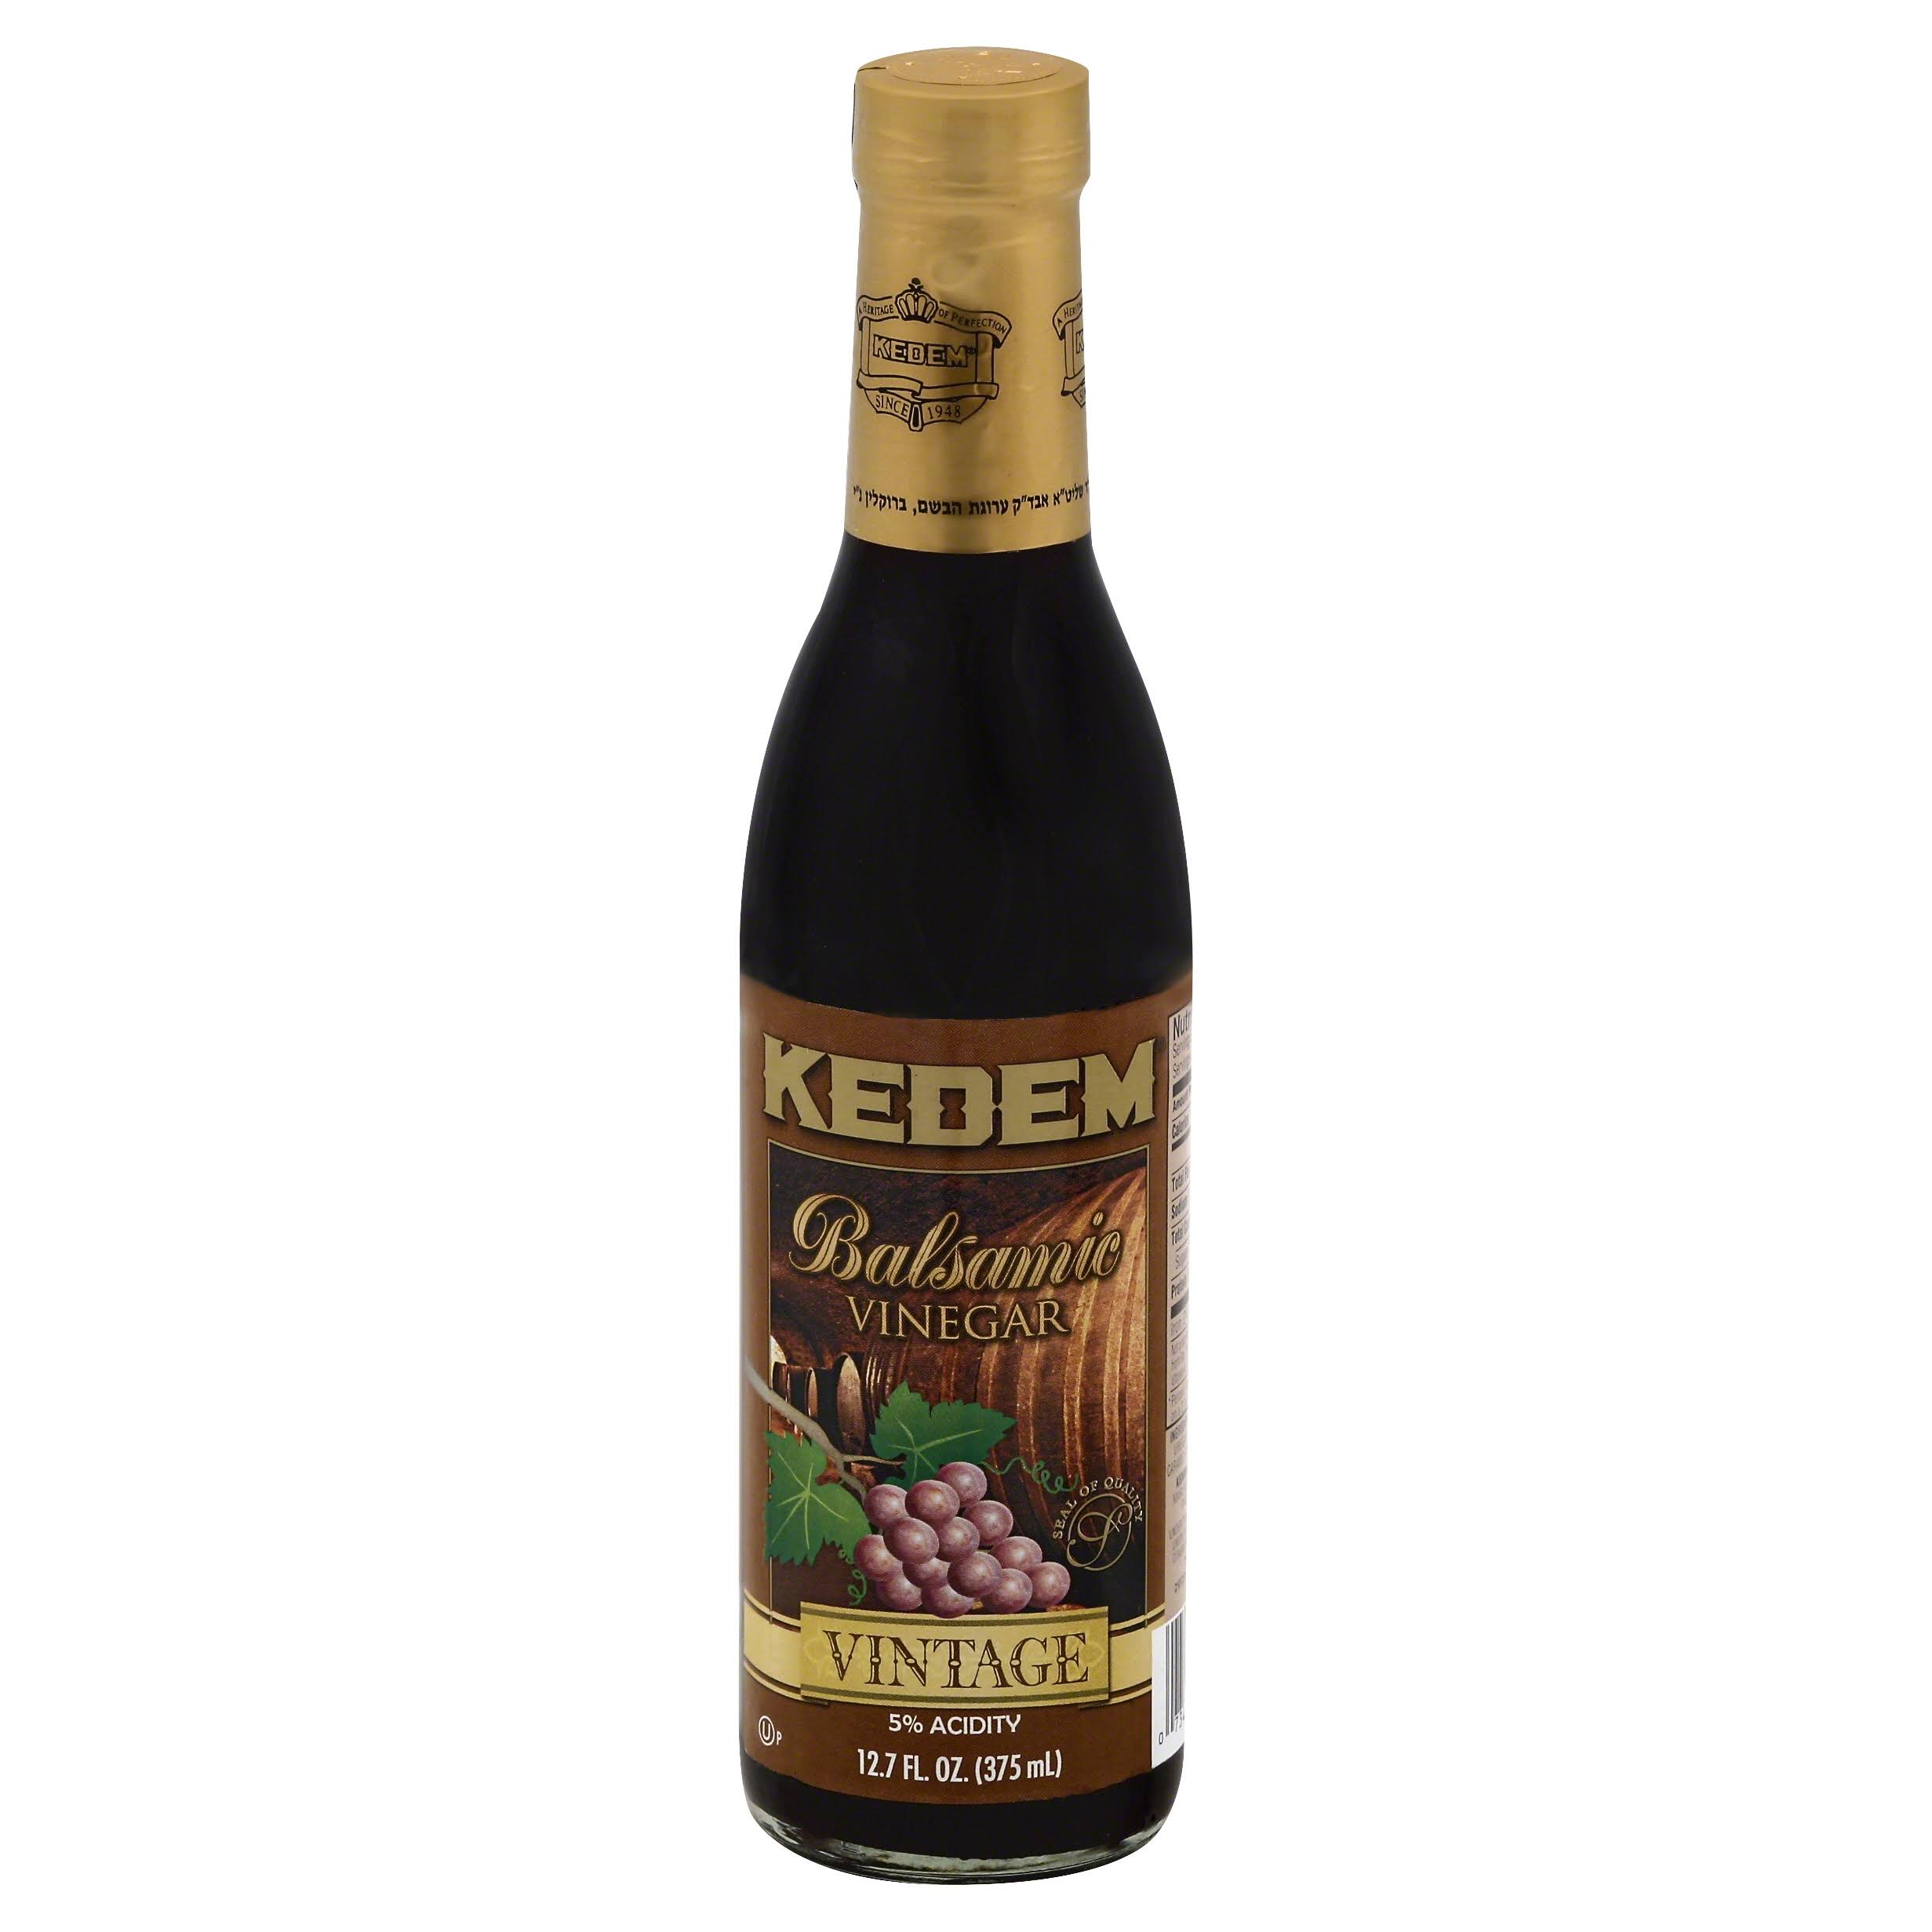 Kedem Vinegar, Balsamic, Vintage - 12.7 oz